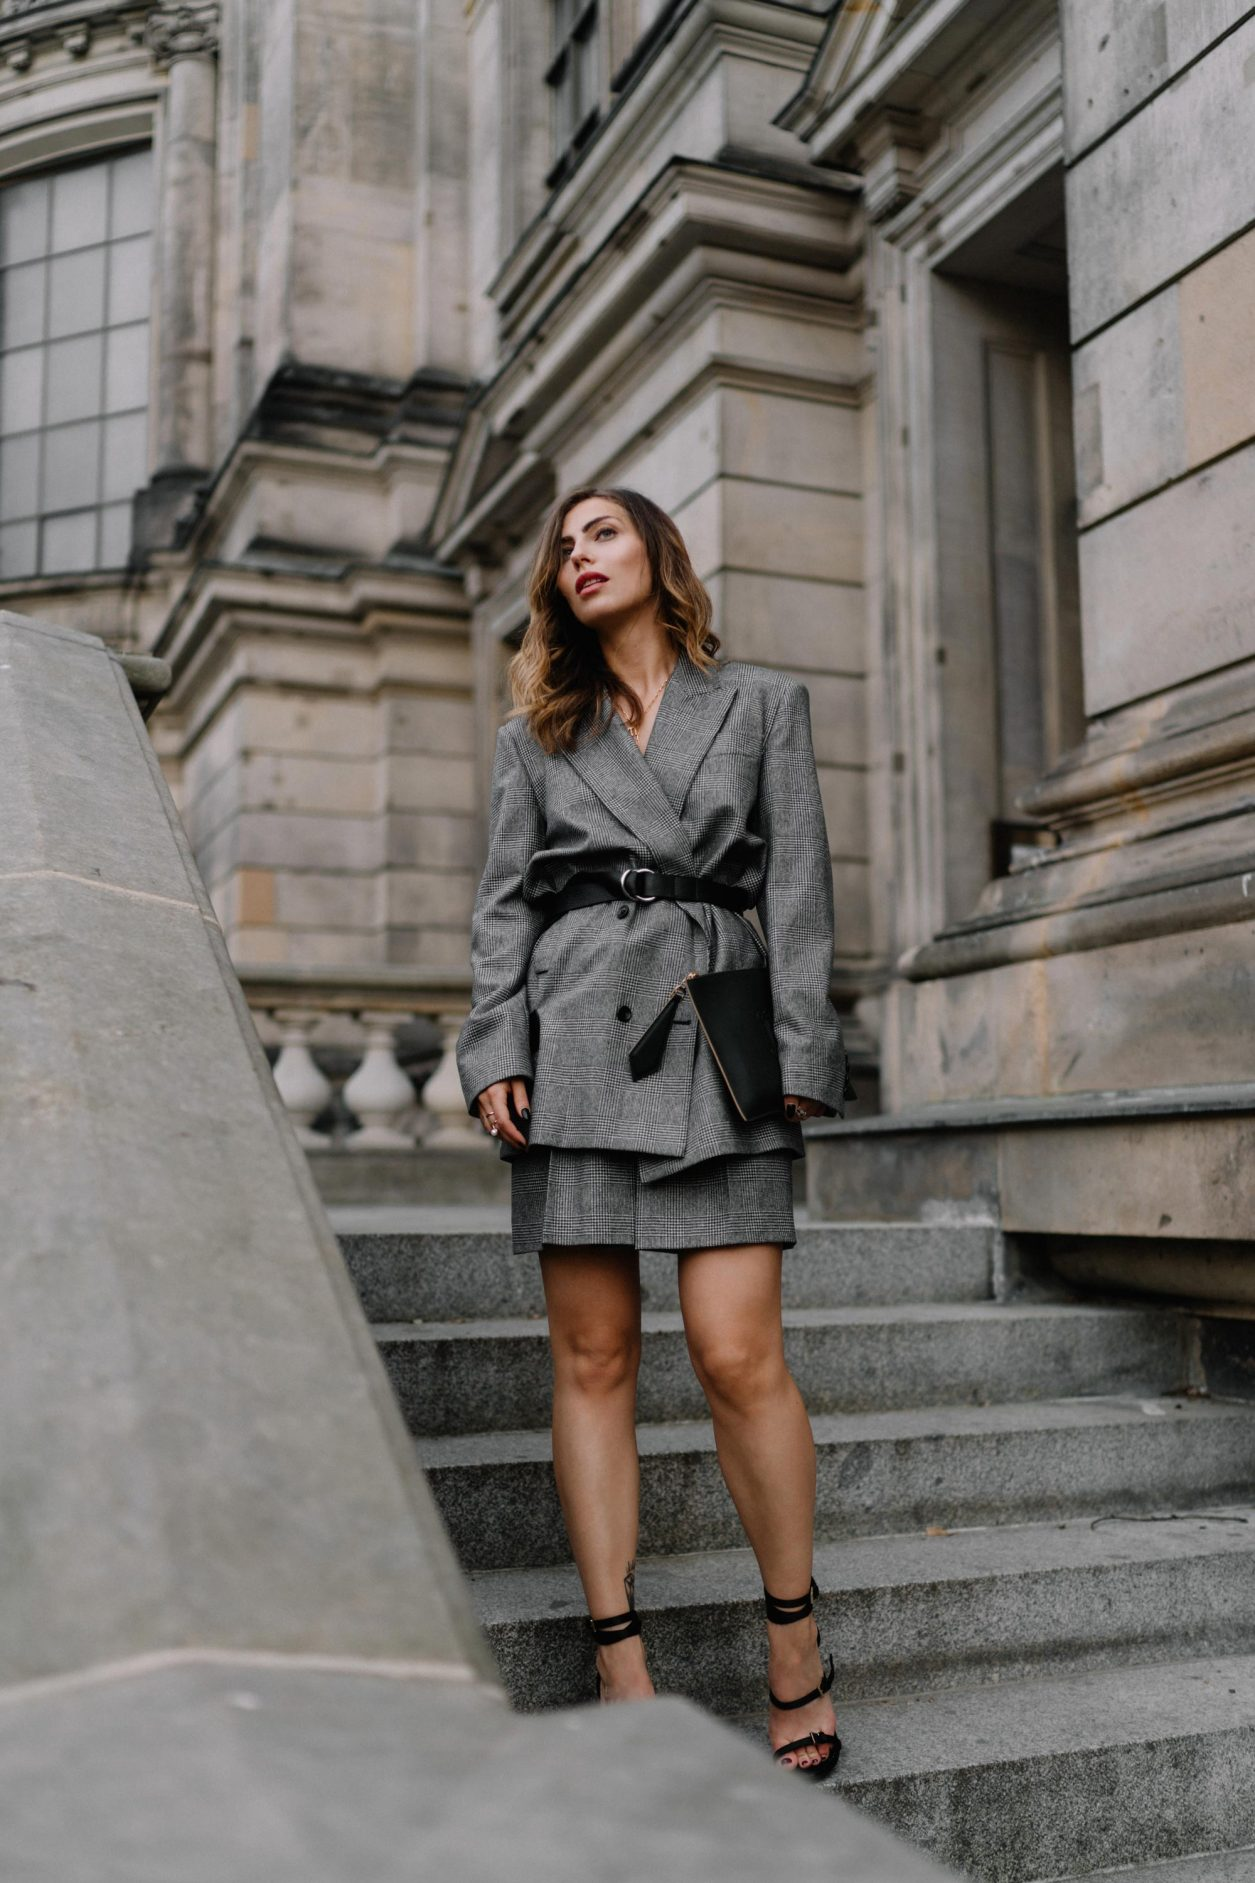 Business look by Max Mara: wearing grey checked crepe suit and mini skirt by Max Mara SS20, black leather envelope clutch by Max Mara, Nappa leather sandals Sylvia by Max Mara new collection, fine jewelry by Thomas Sabo, Georg Jensen, Close, Louis Vuitton; location: Berlin Museum Island, Berliner Dom, Berlin Fashion Blogger